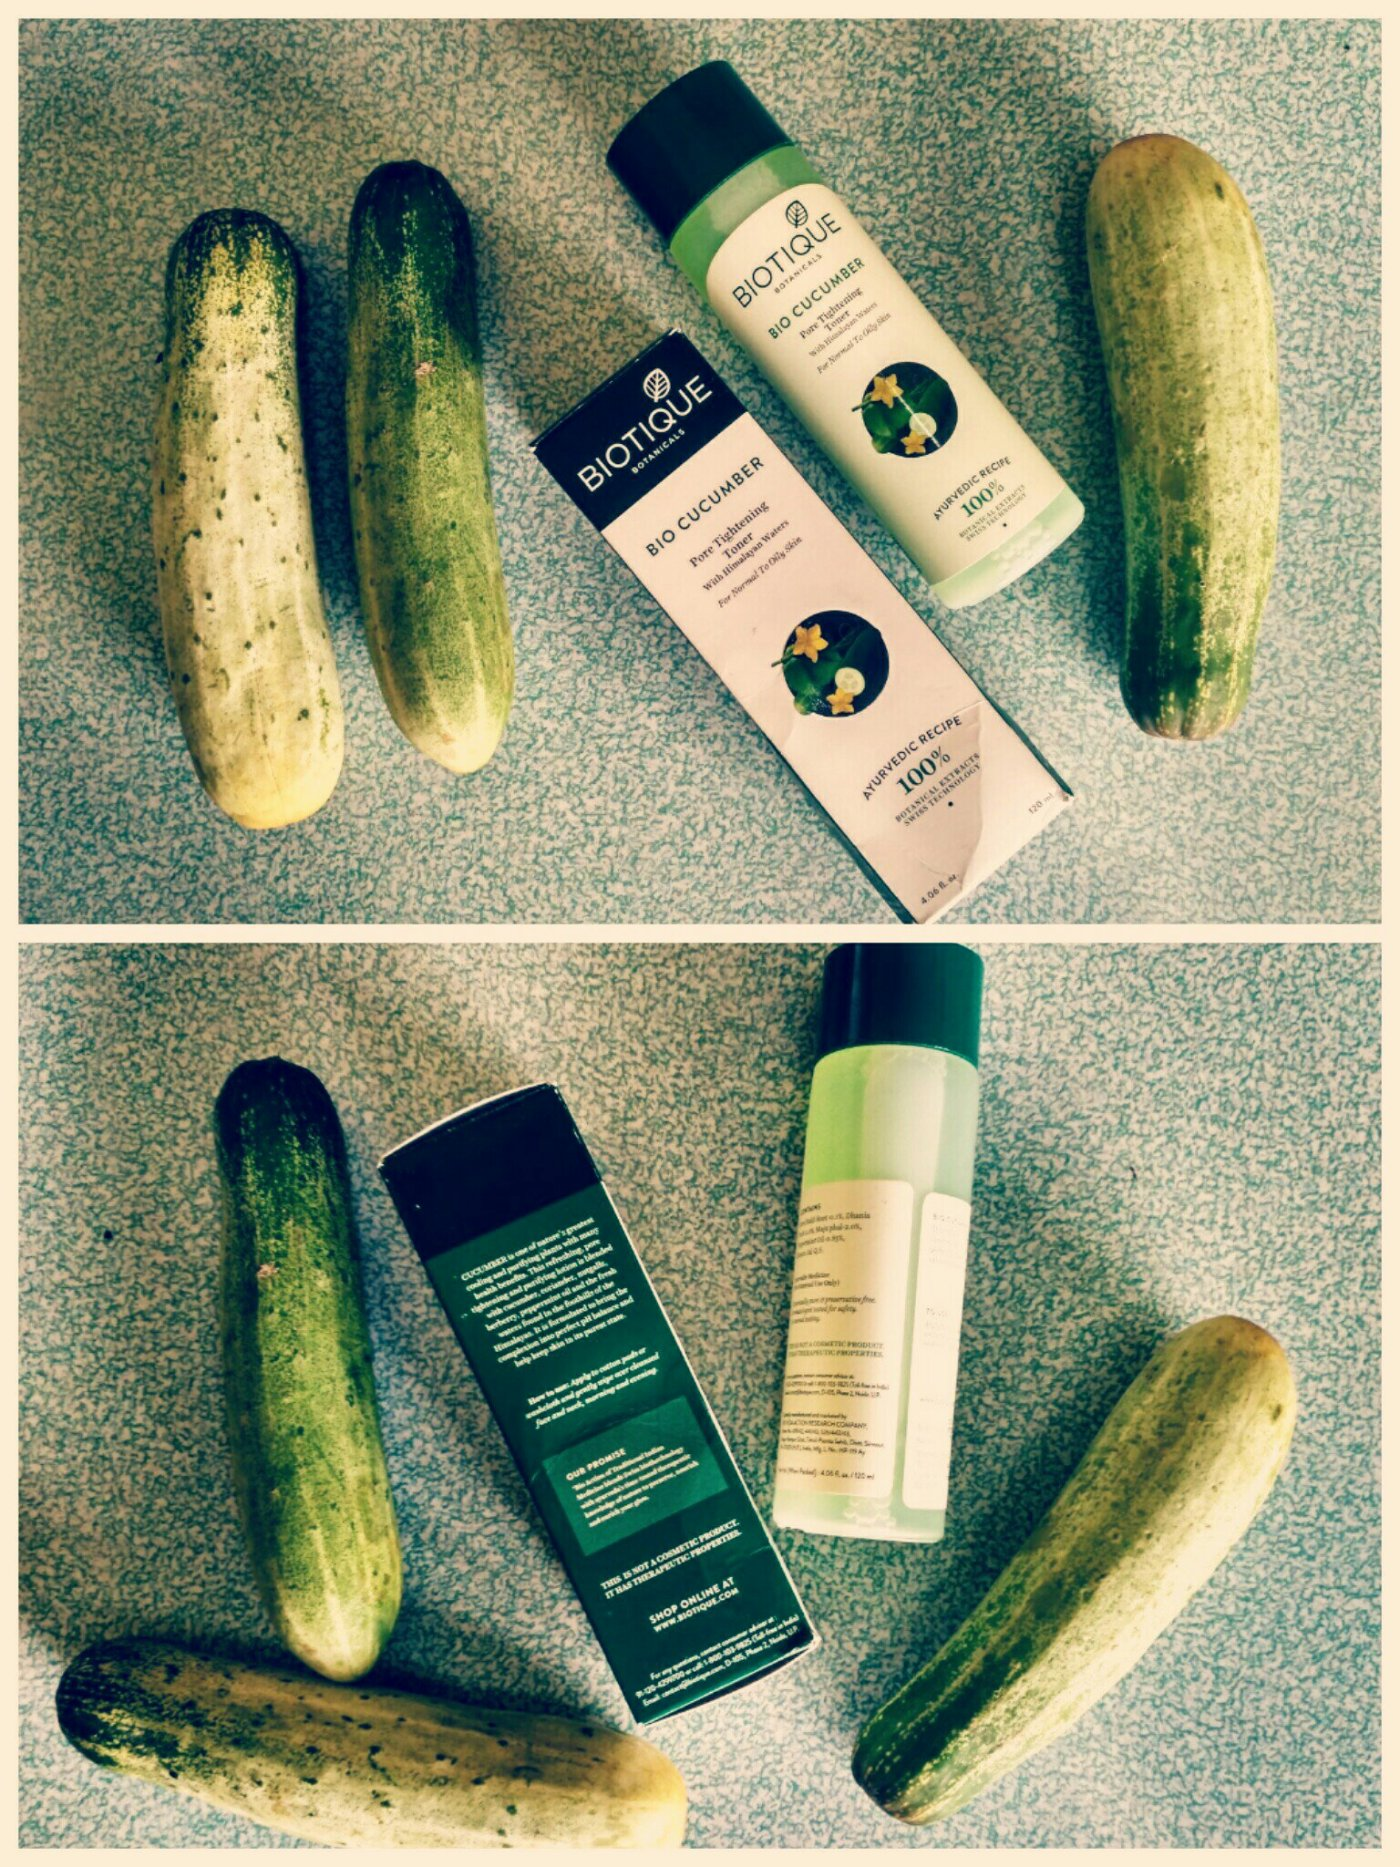 Biotique Cucumber Pore Tightening Toner